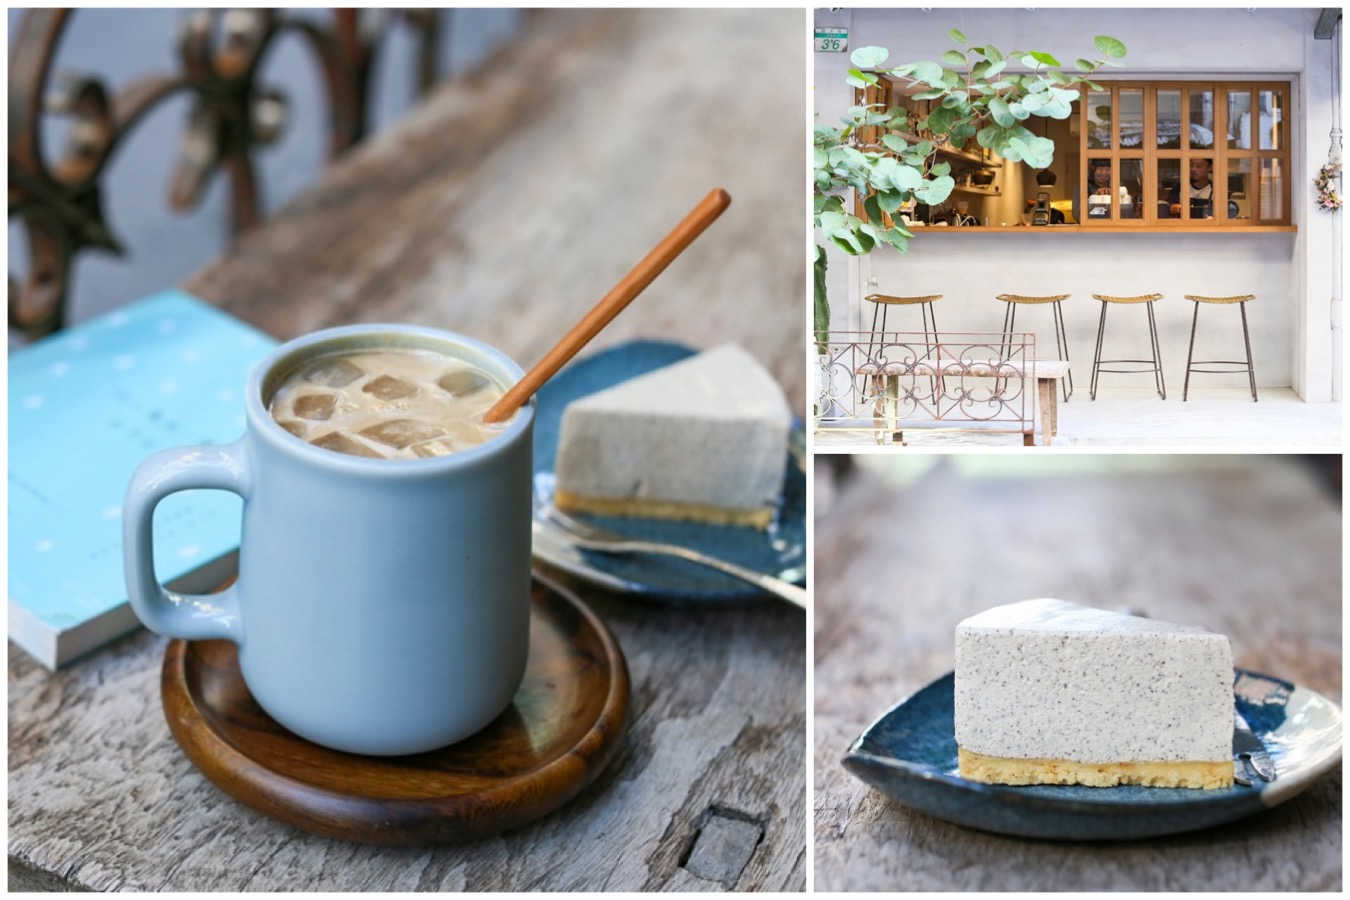 Jack & NaNa Coffee Store - Under The Radar Cafe In Taipei With Solid Quality Coffee And Cheesecakes